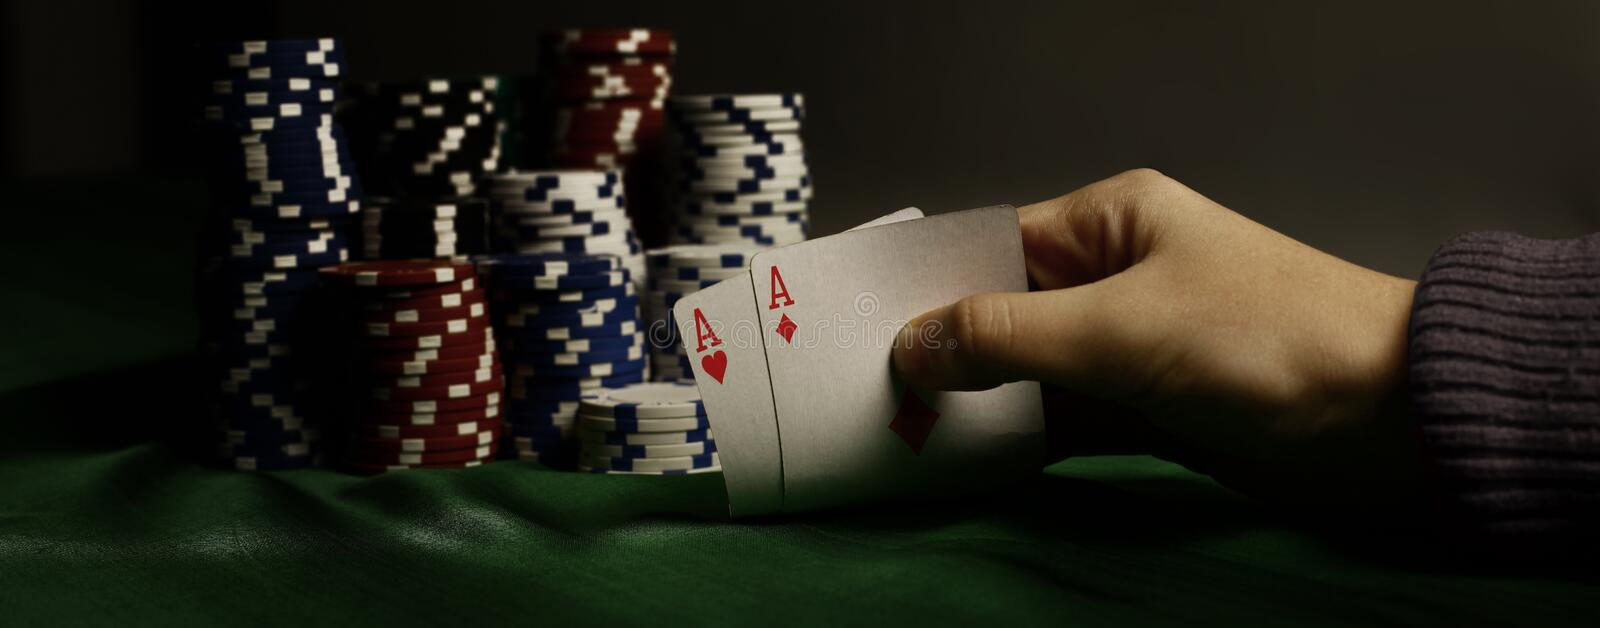 Player's hand of cards stock image  Image of human, fold